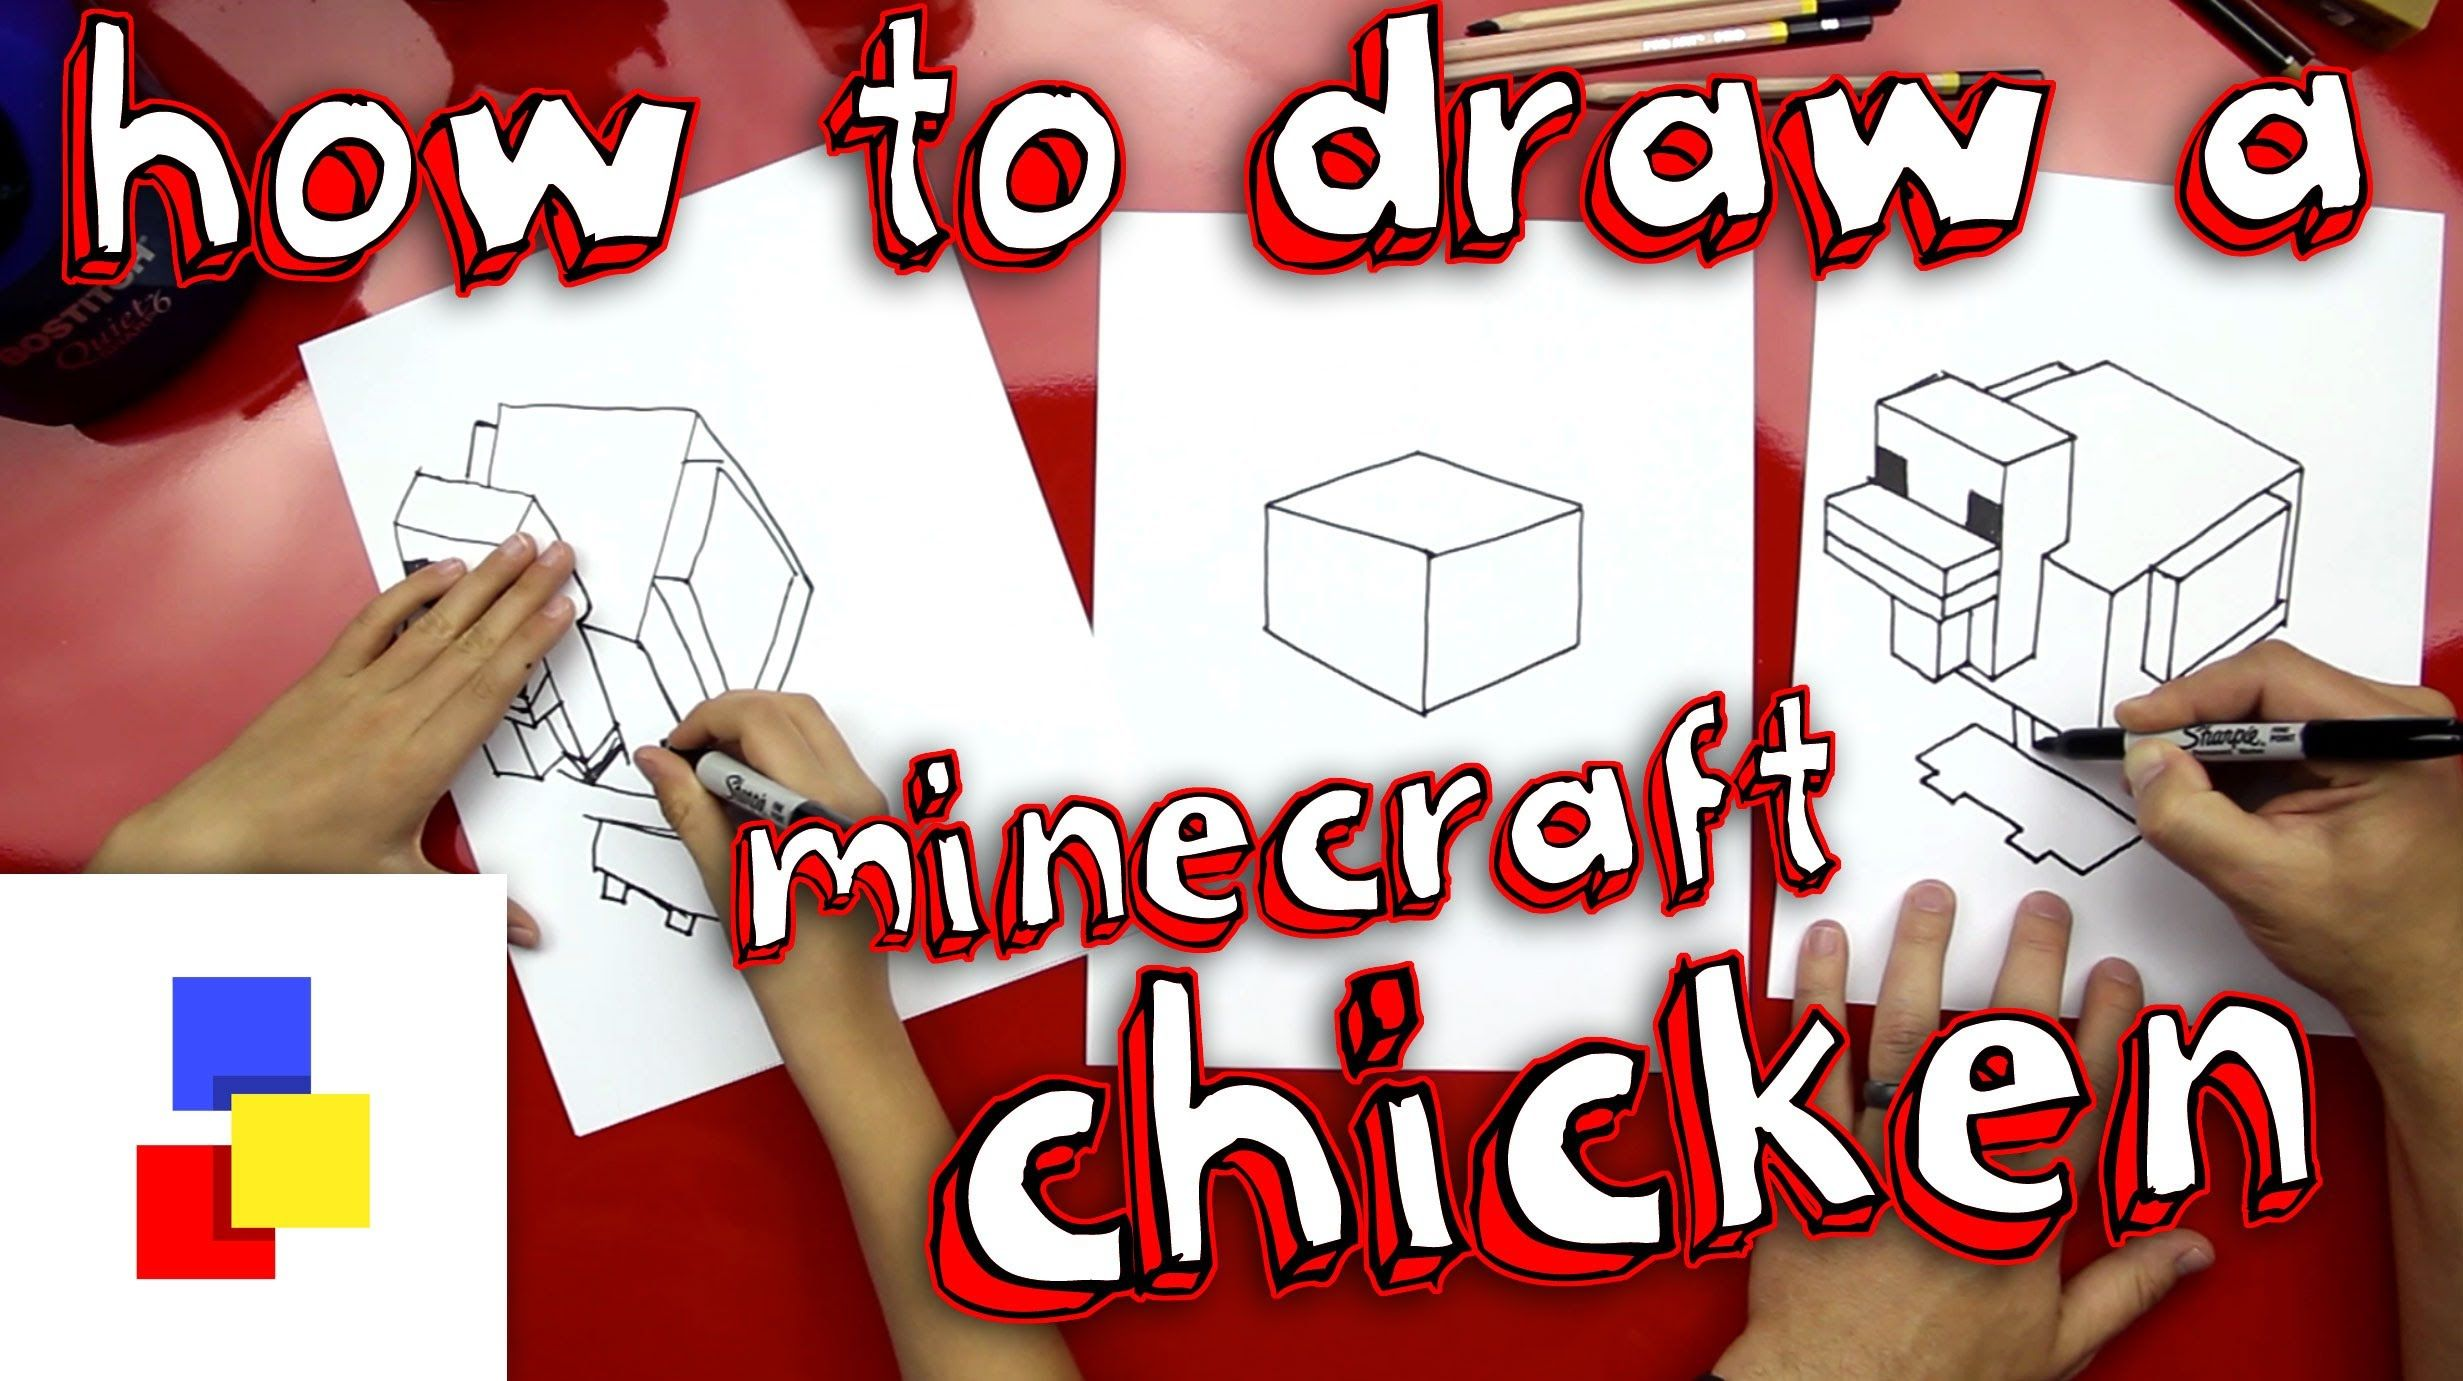 How to draw a chicken from minecraft art for kids hub